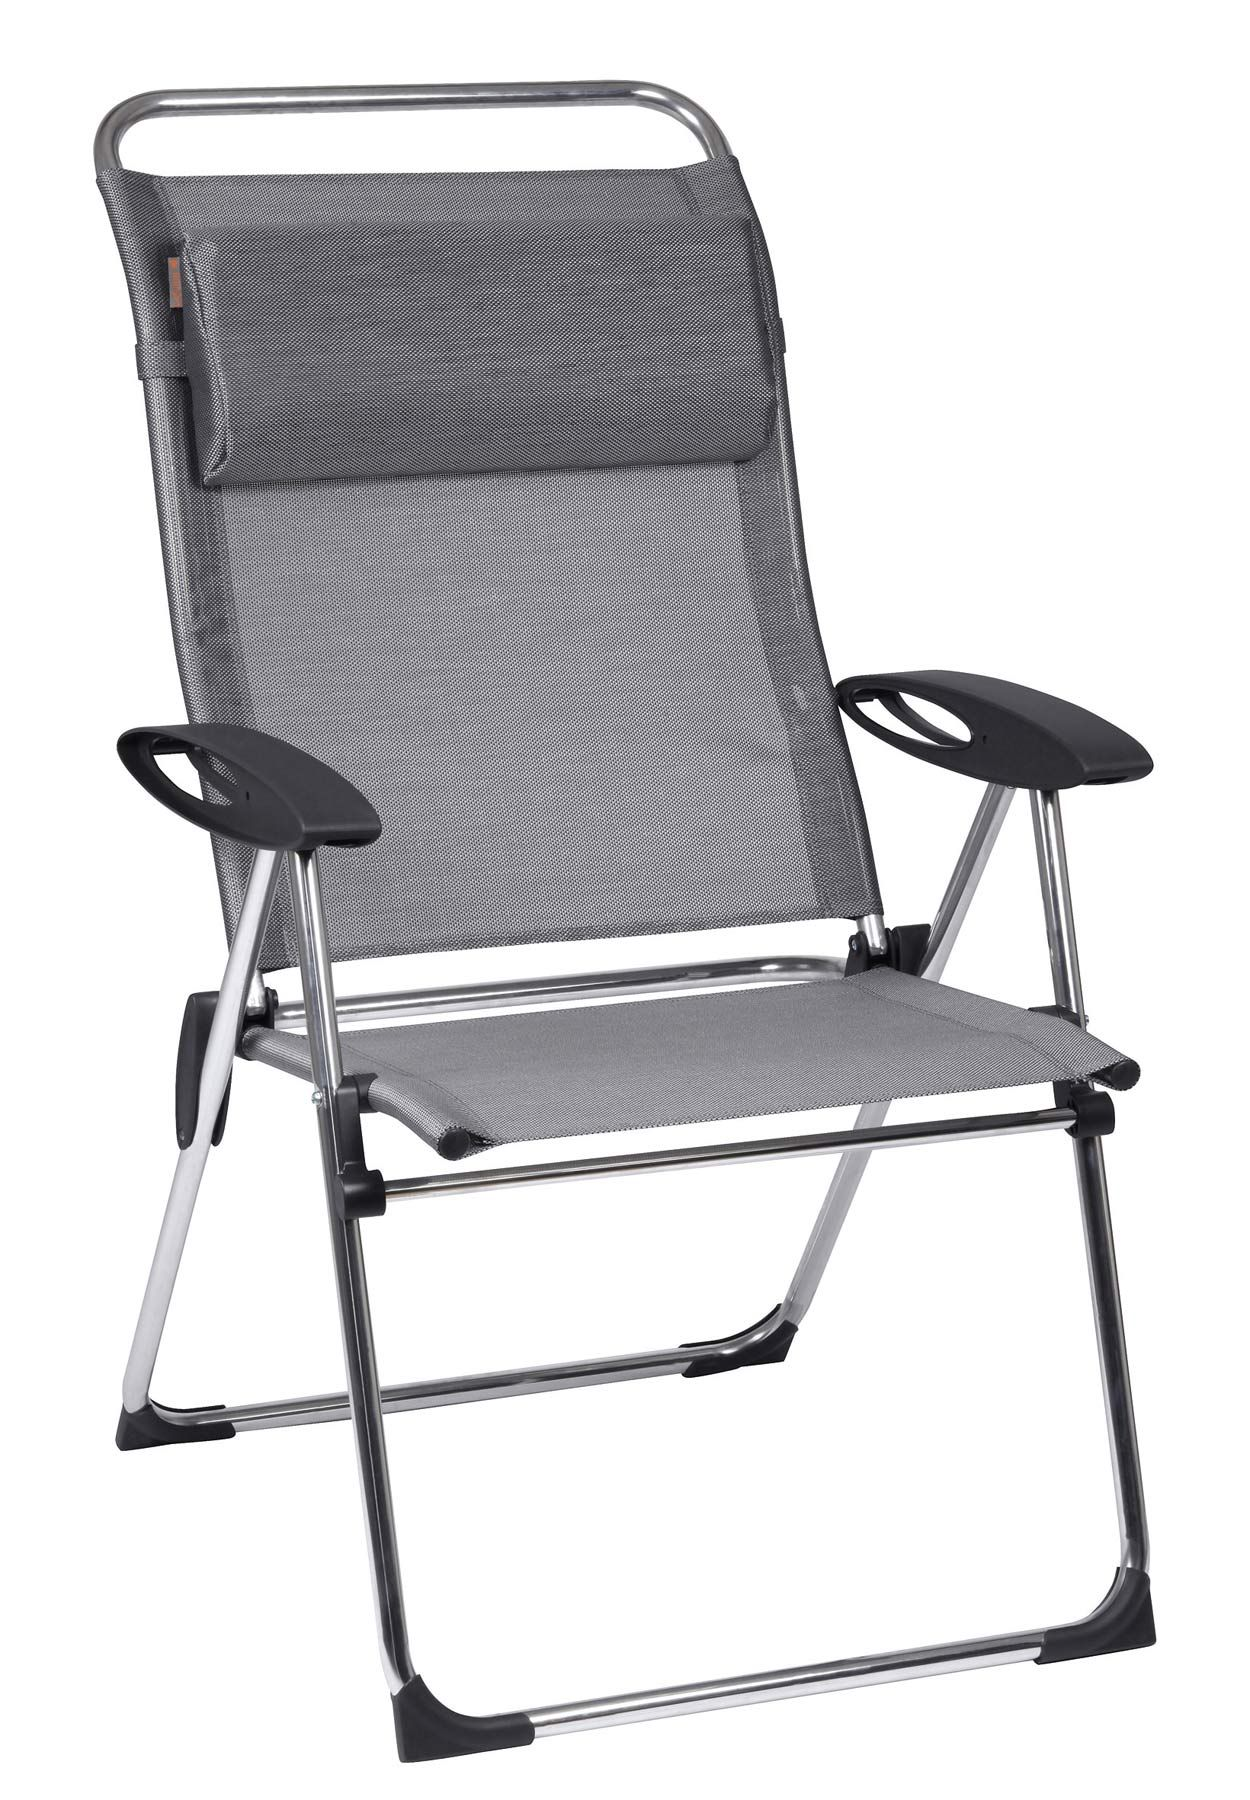 Beachmall Com Lafuma Chamonix Elips Xl High Back Chair Beach